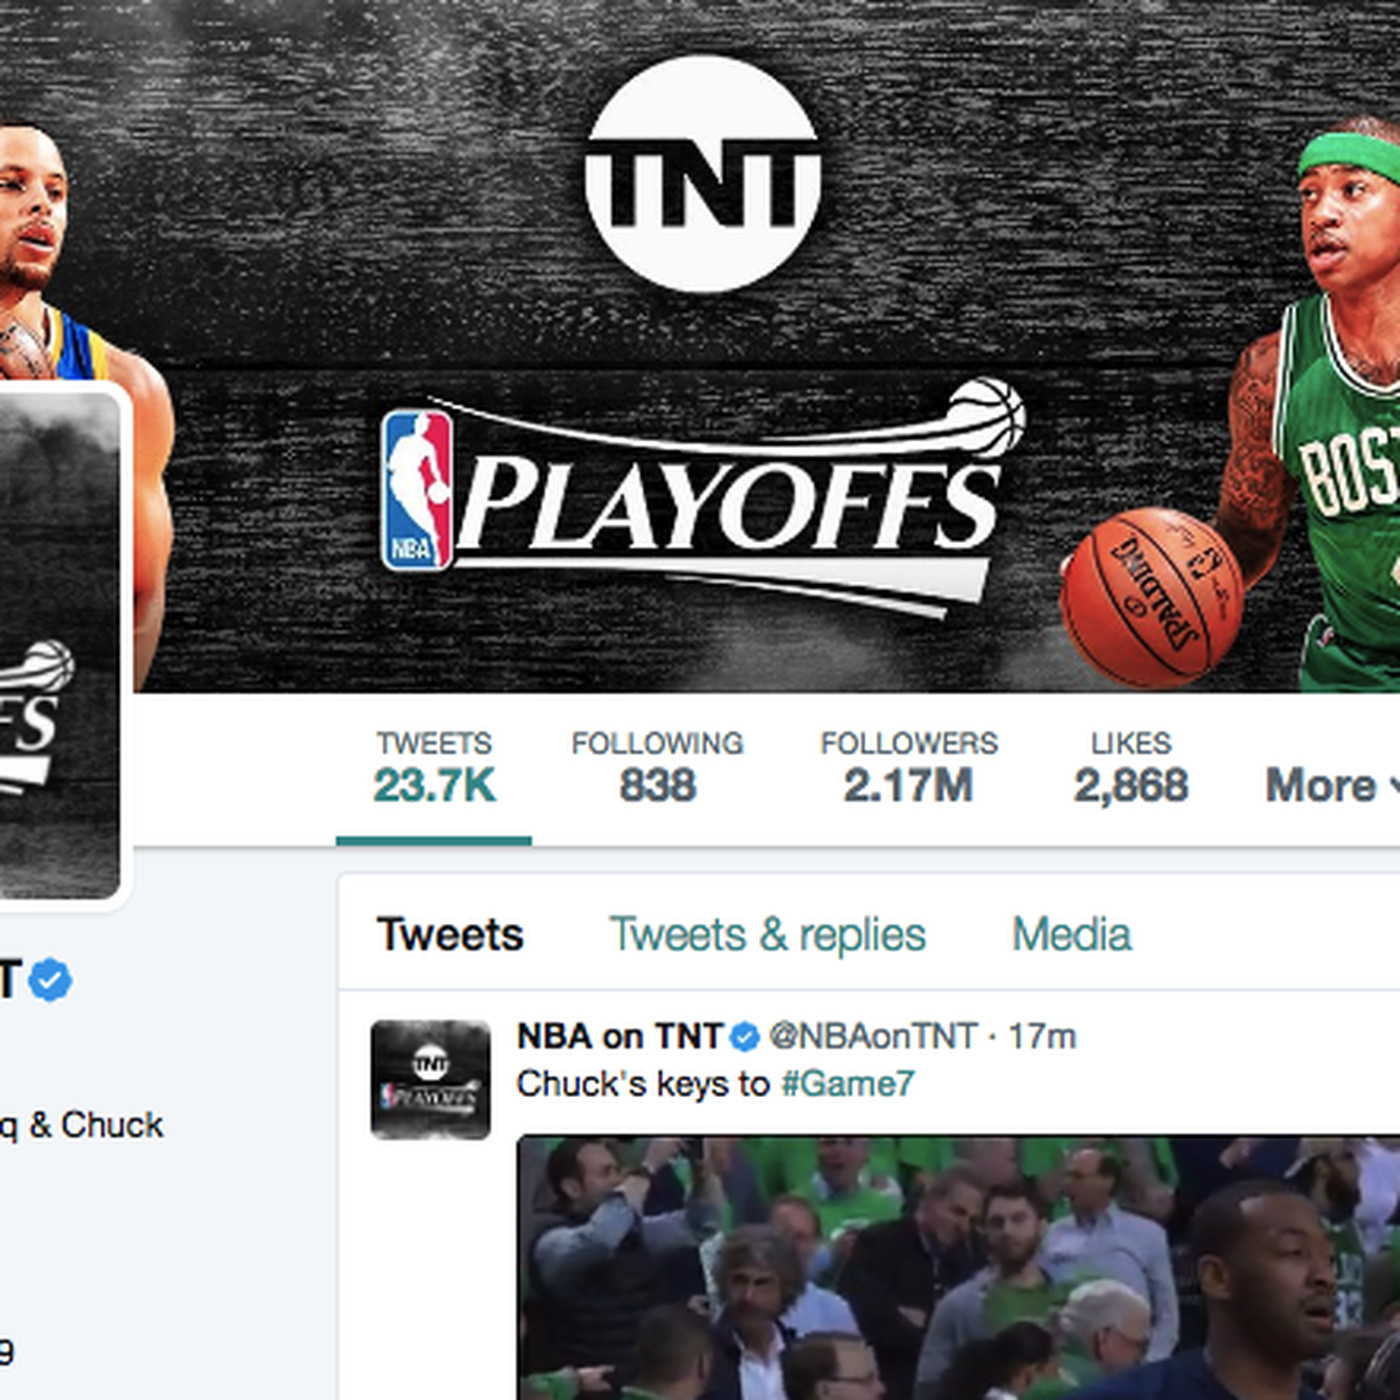 nba on tnt's twitter account seems to have already decided the